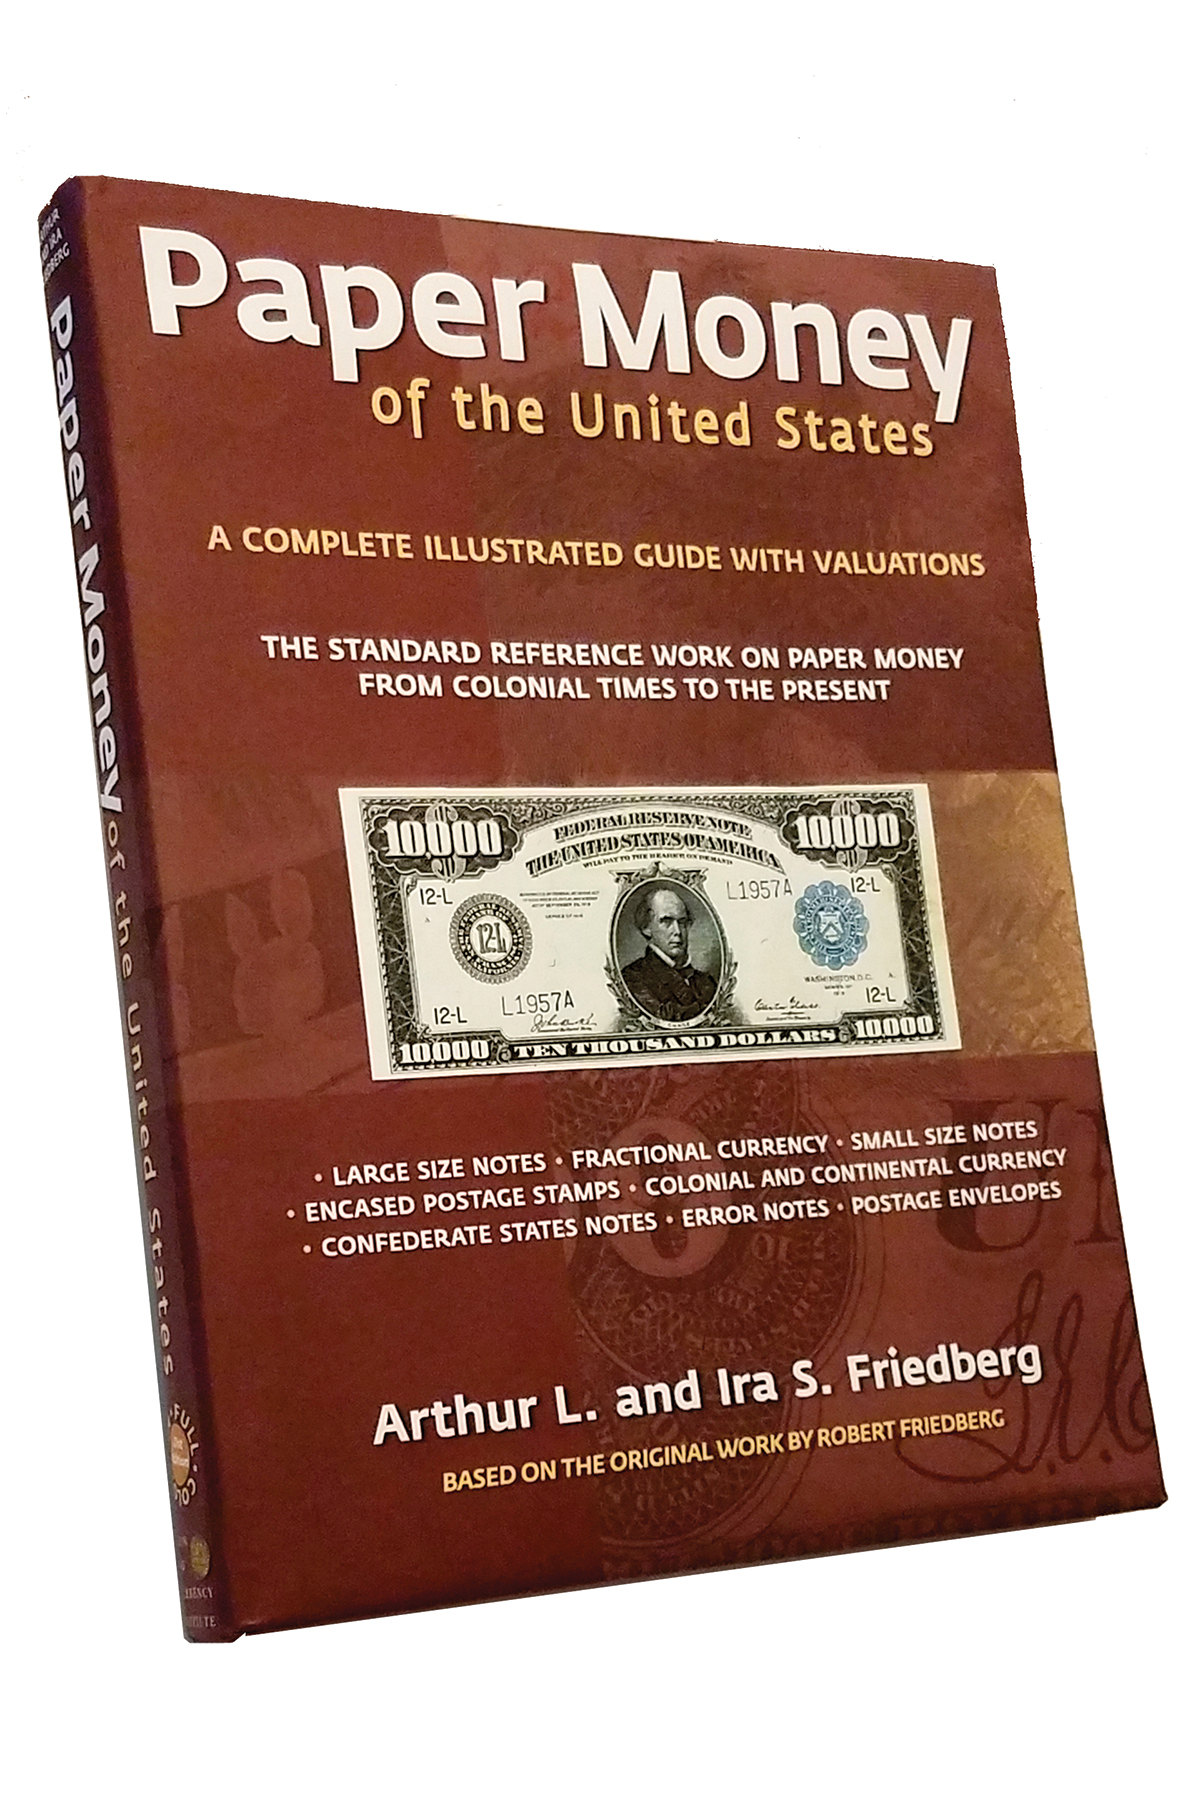 main image for PRESS RELEASE: 21st Edition of Friedberg's Paper Money of United States, in full color, to be released in multiple formats on October 23